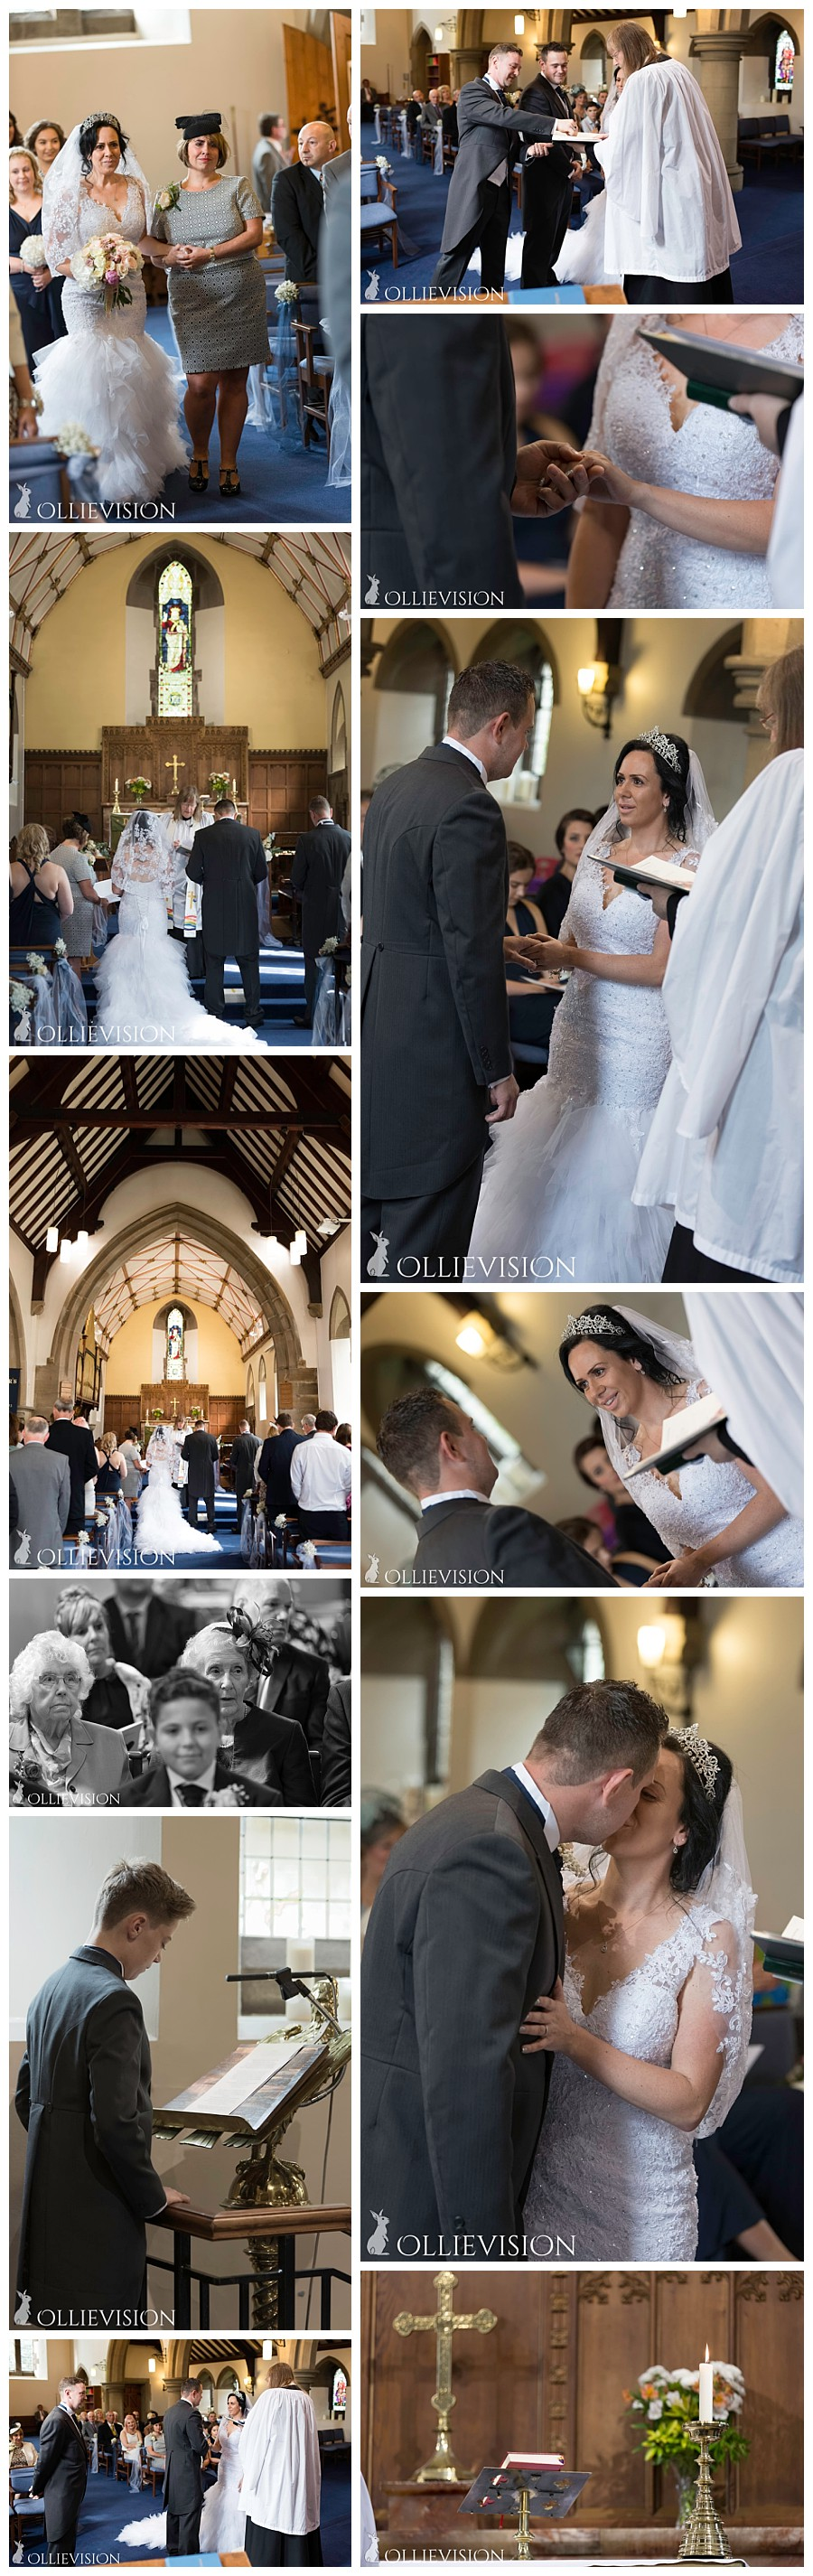 Wedding Photography Harden Church, wedding photographers Bingley, Yorkshire wedding photographers, Harden church interior Bingley